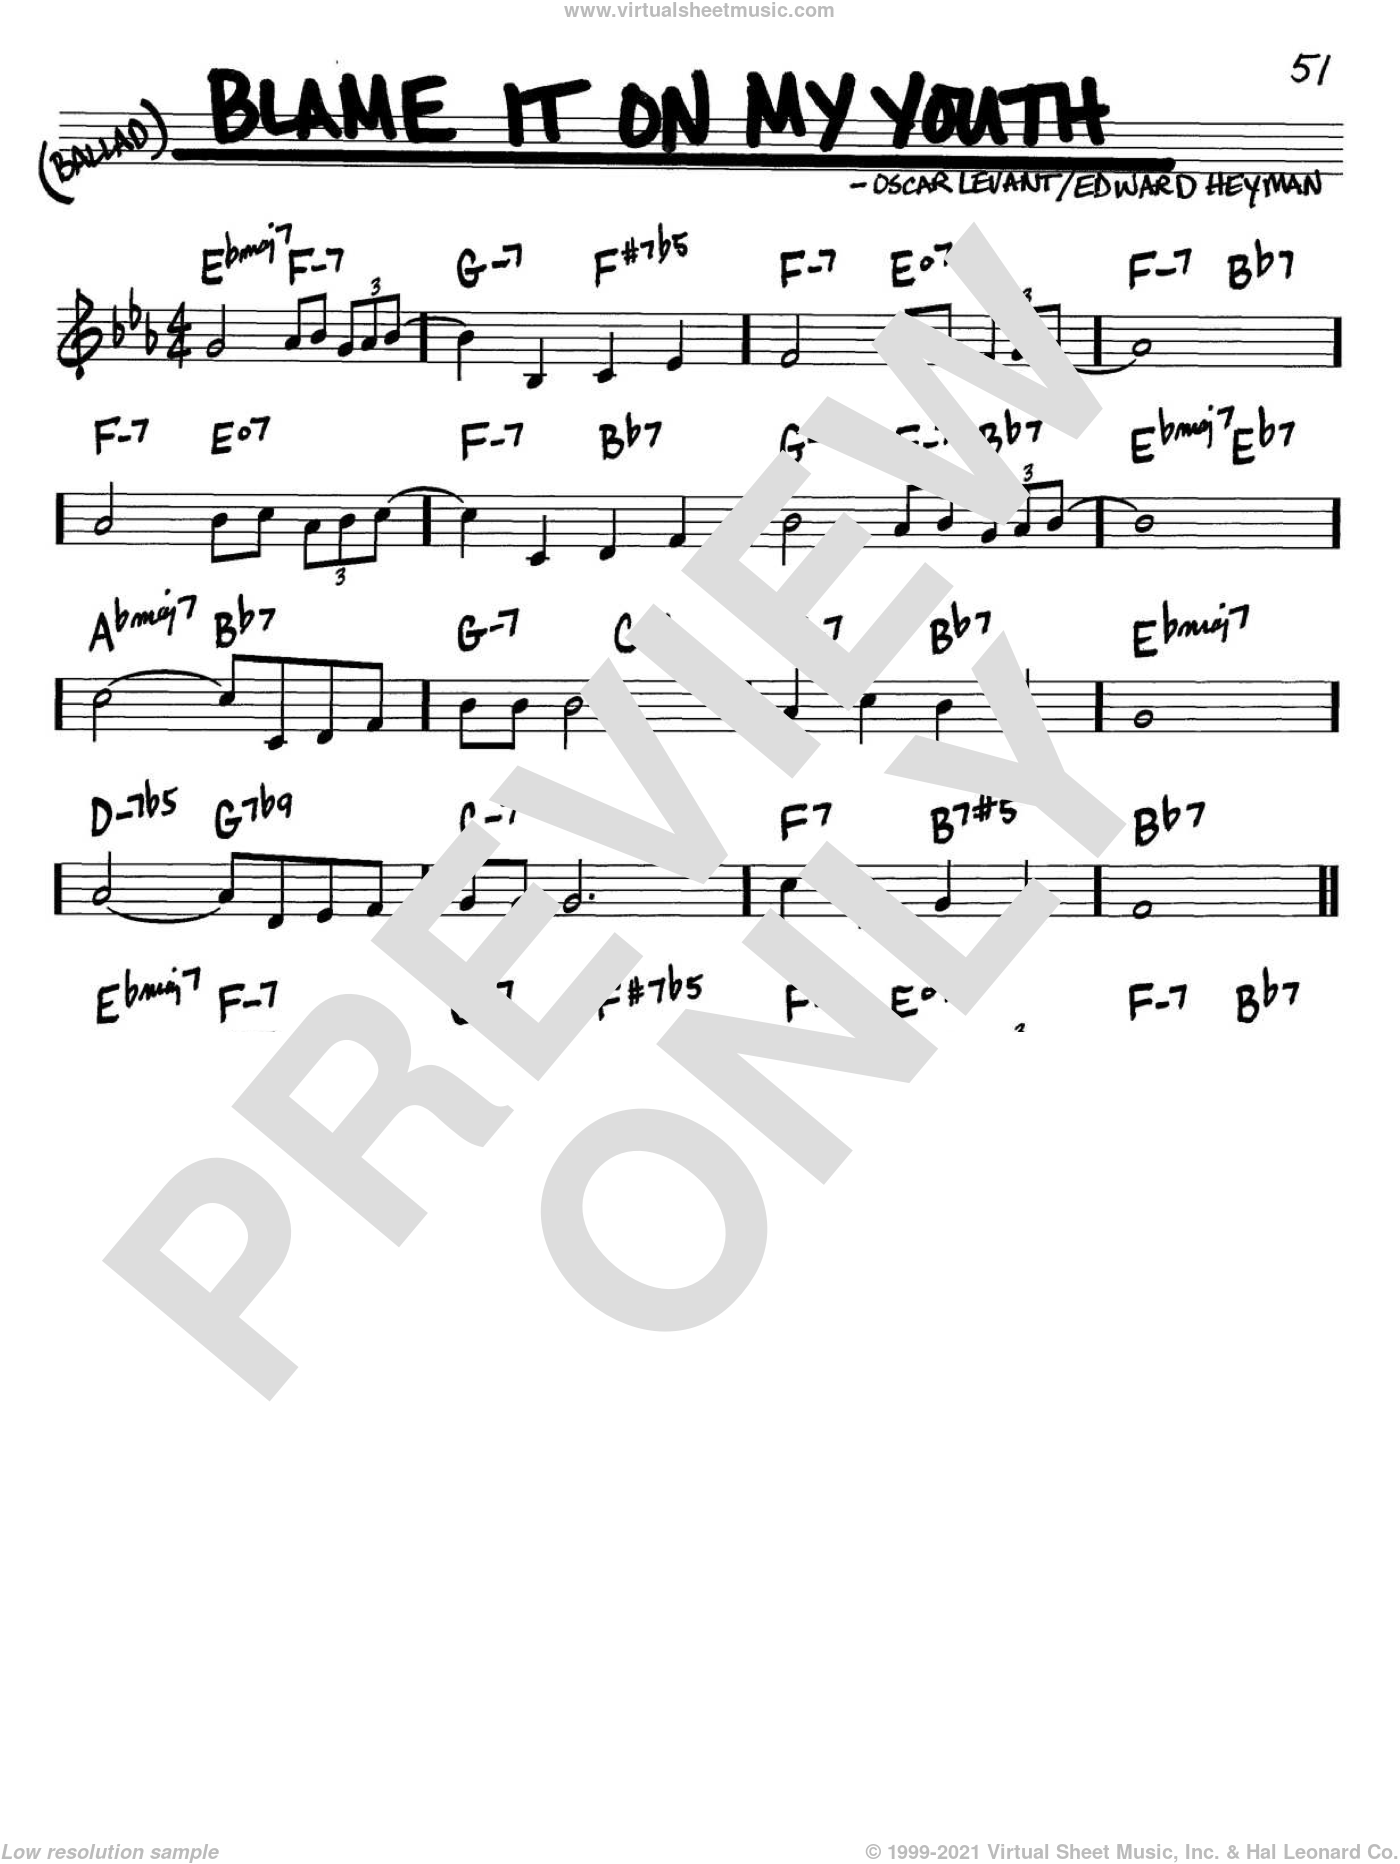 Blame It On My Youth sheet music for voice and other instruments (C) by Oscar Levant and Edward Heyman. Score Image Preview.